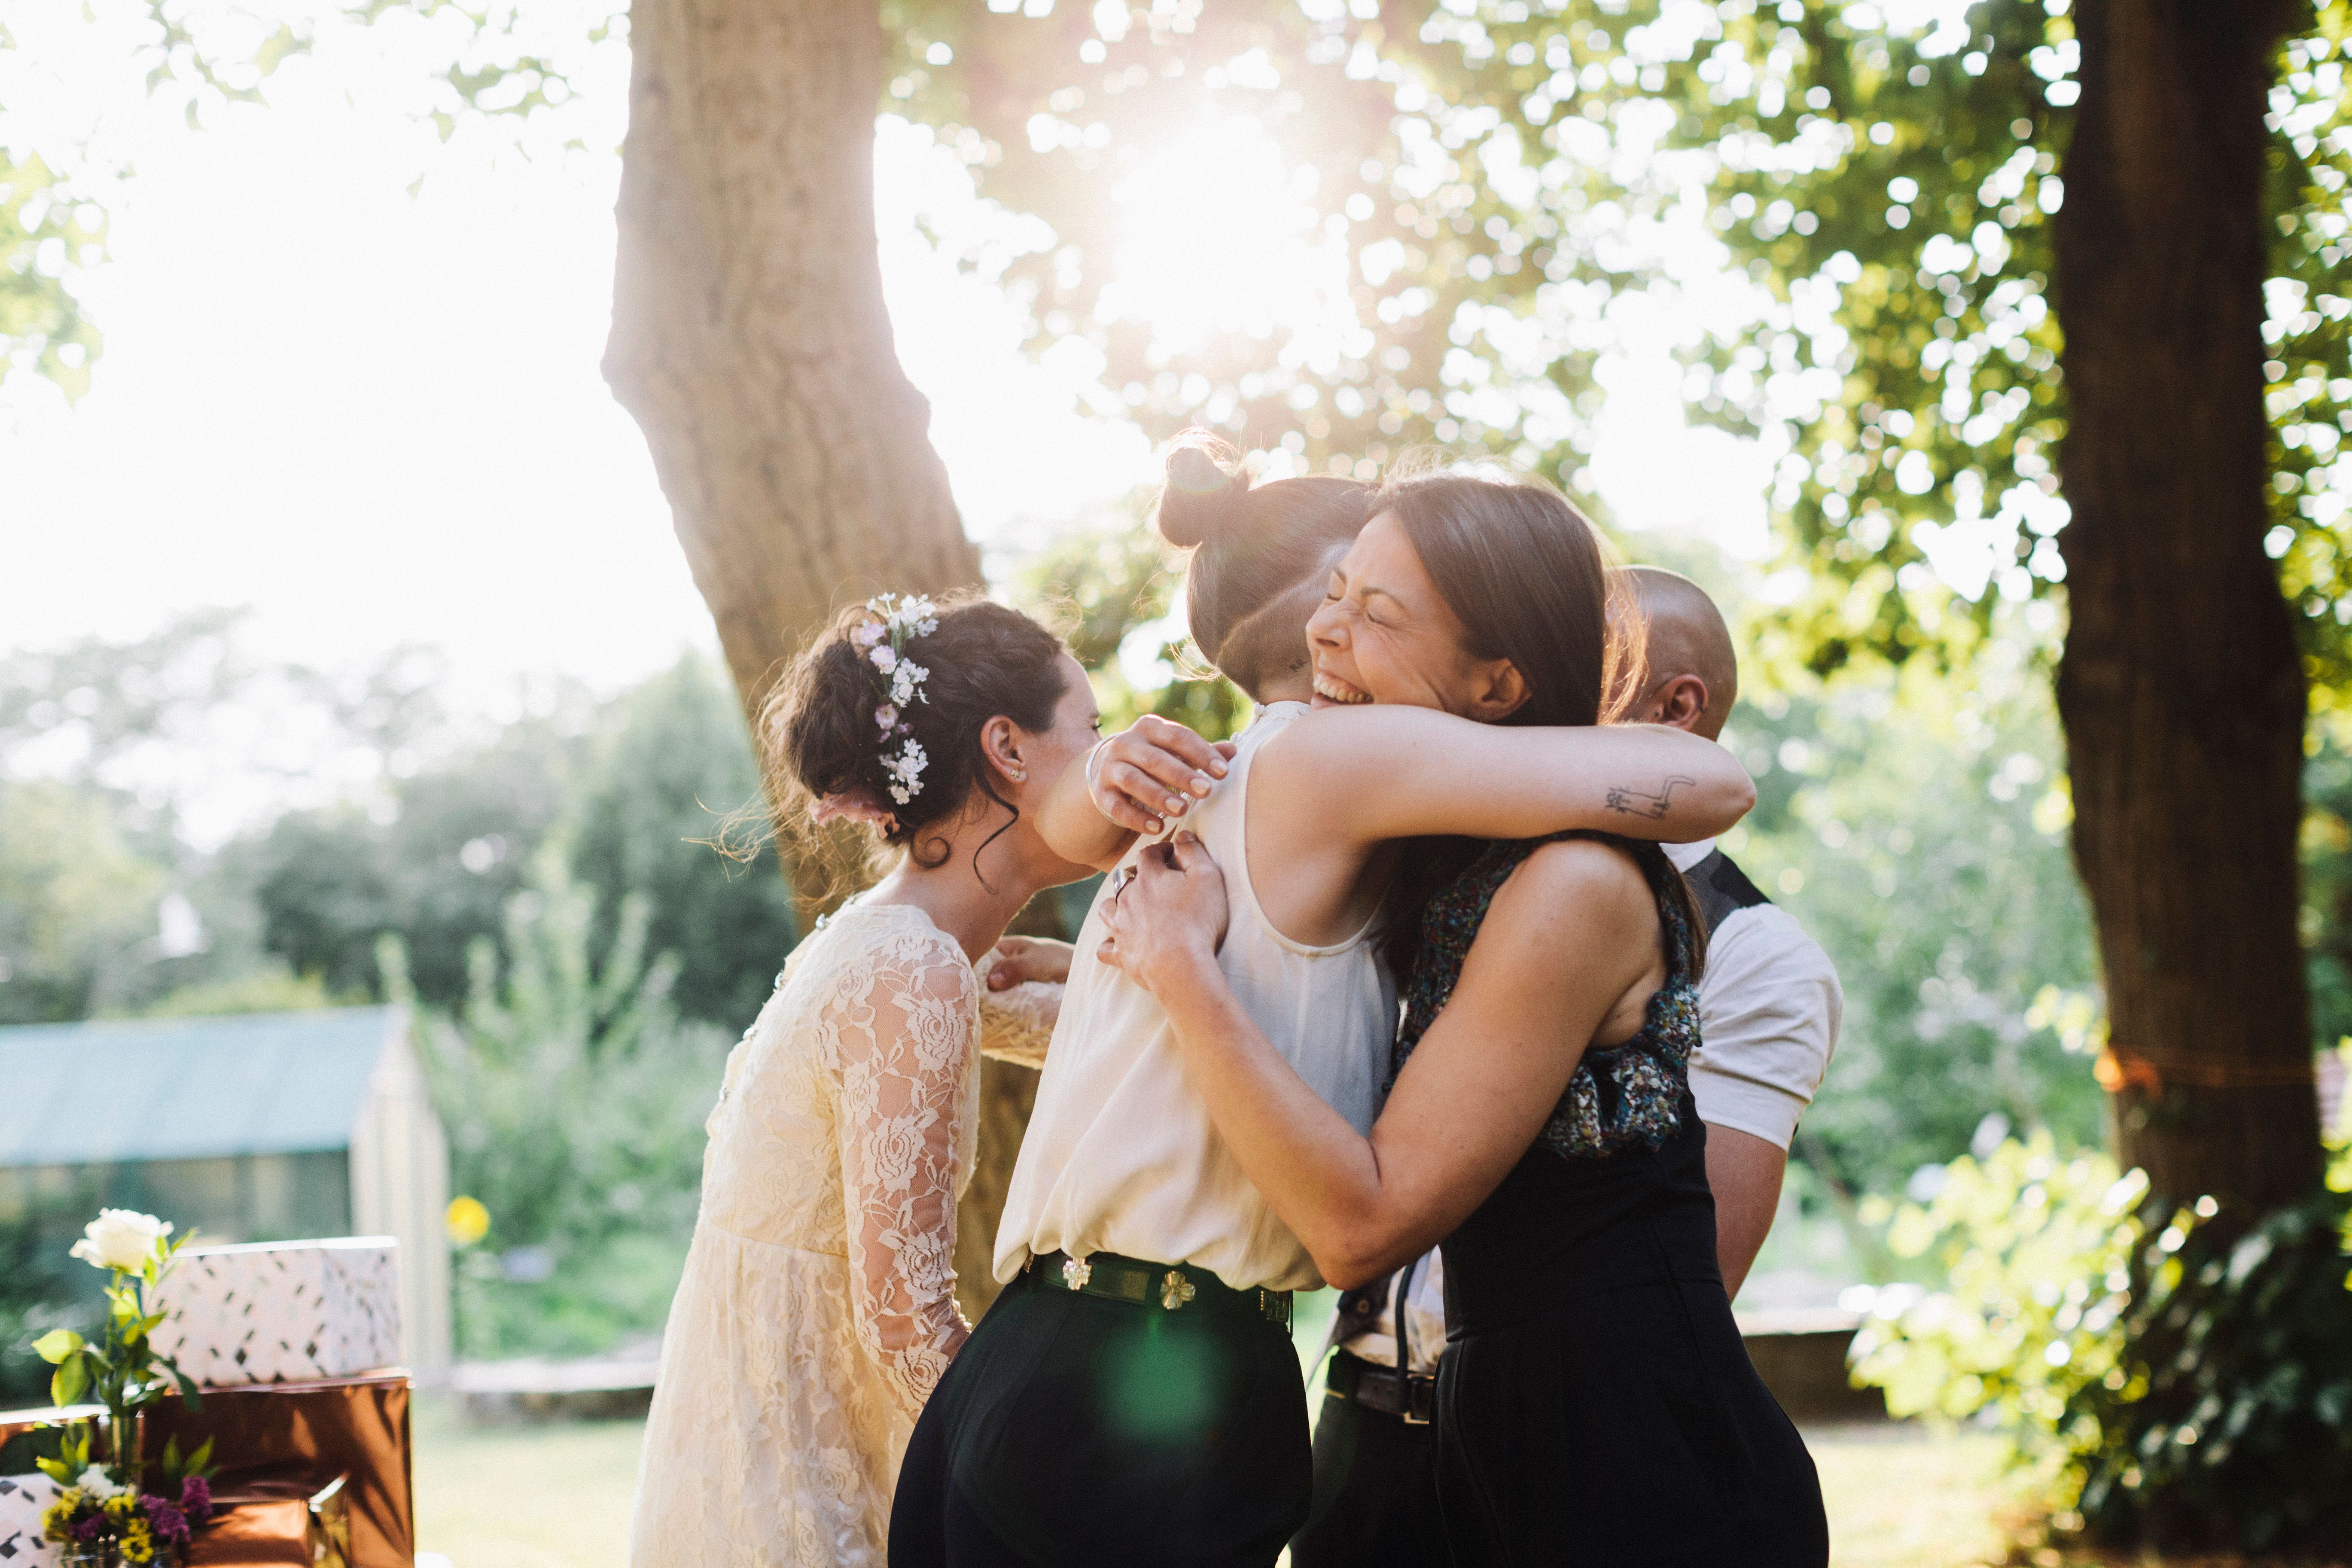 Newlywed lesbian couple being congratulated by wedding guest.